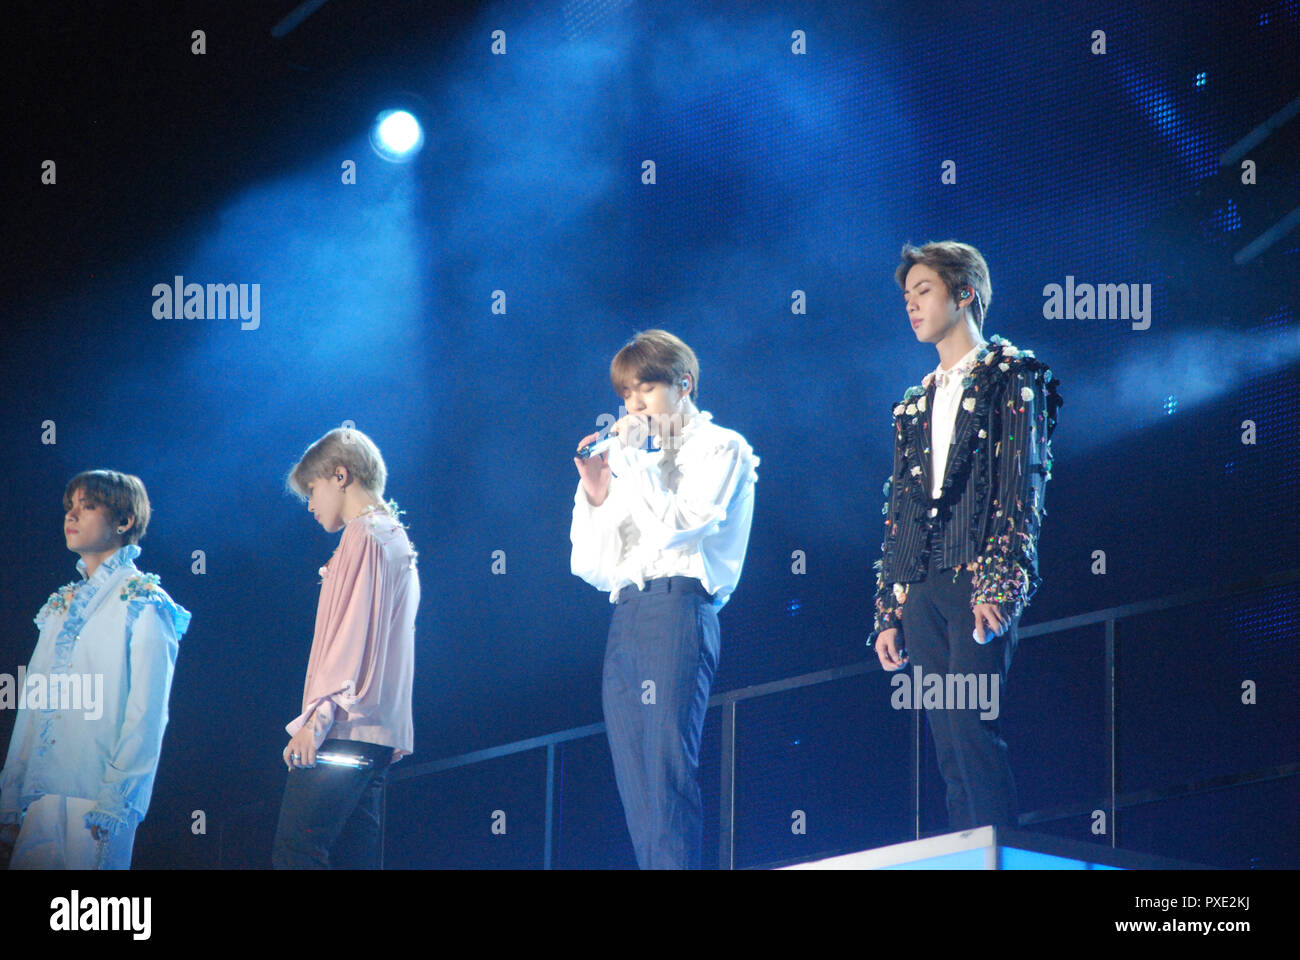 BTS World Tour, Queens, NY October 6, 2018 - Stock Image